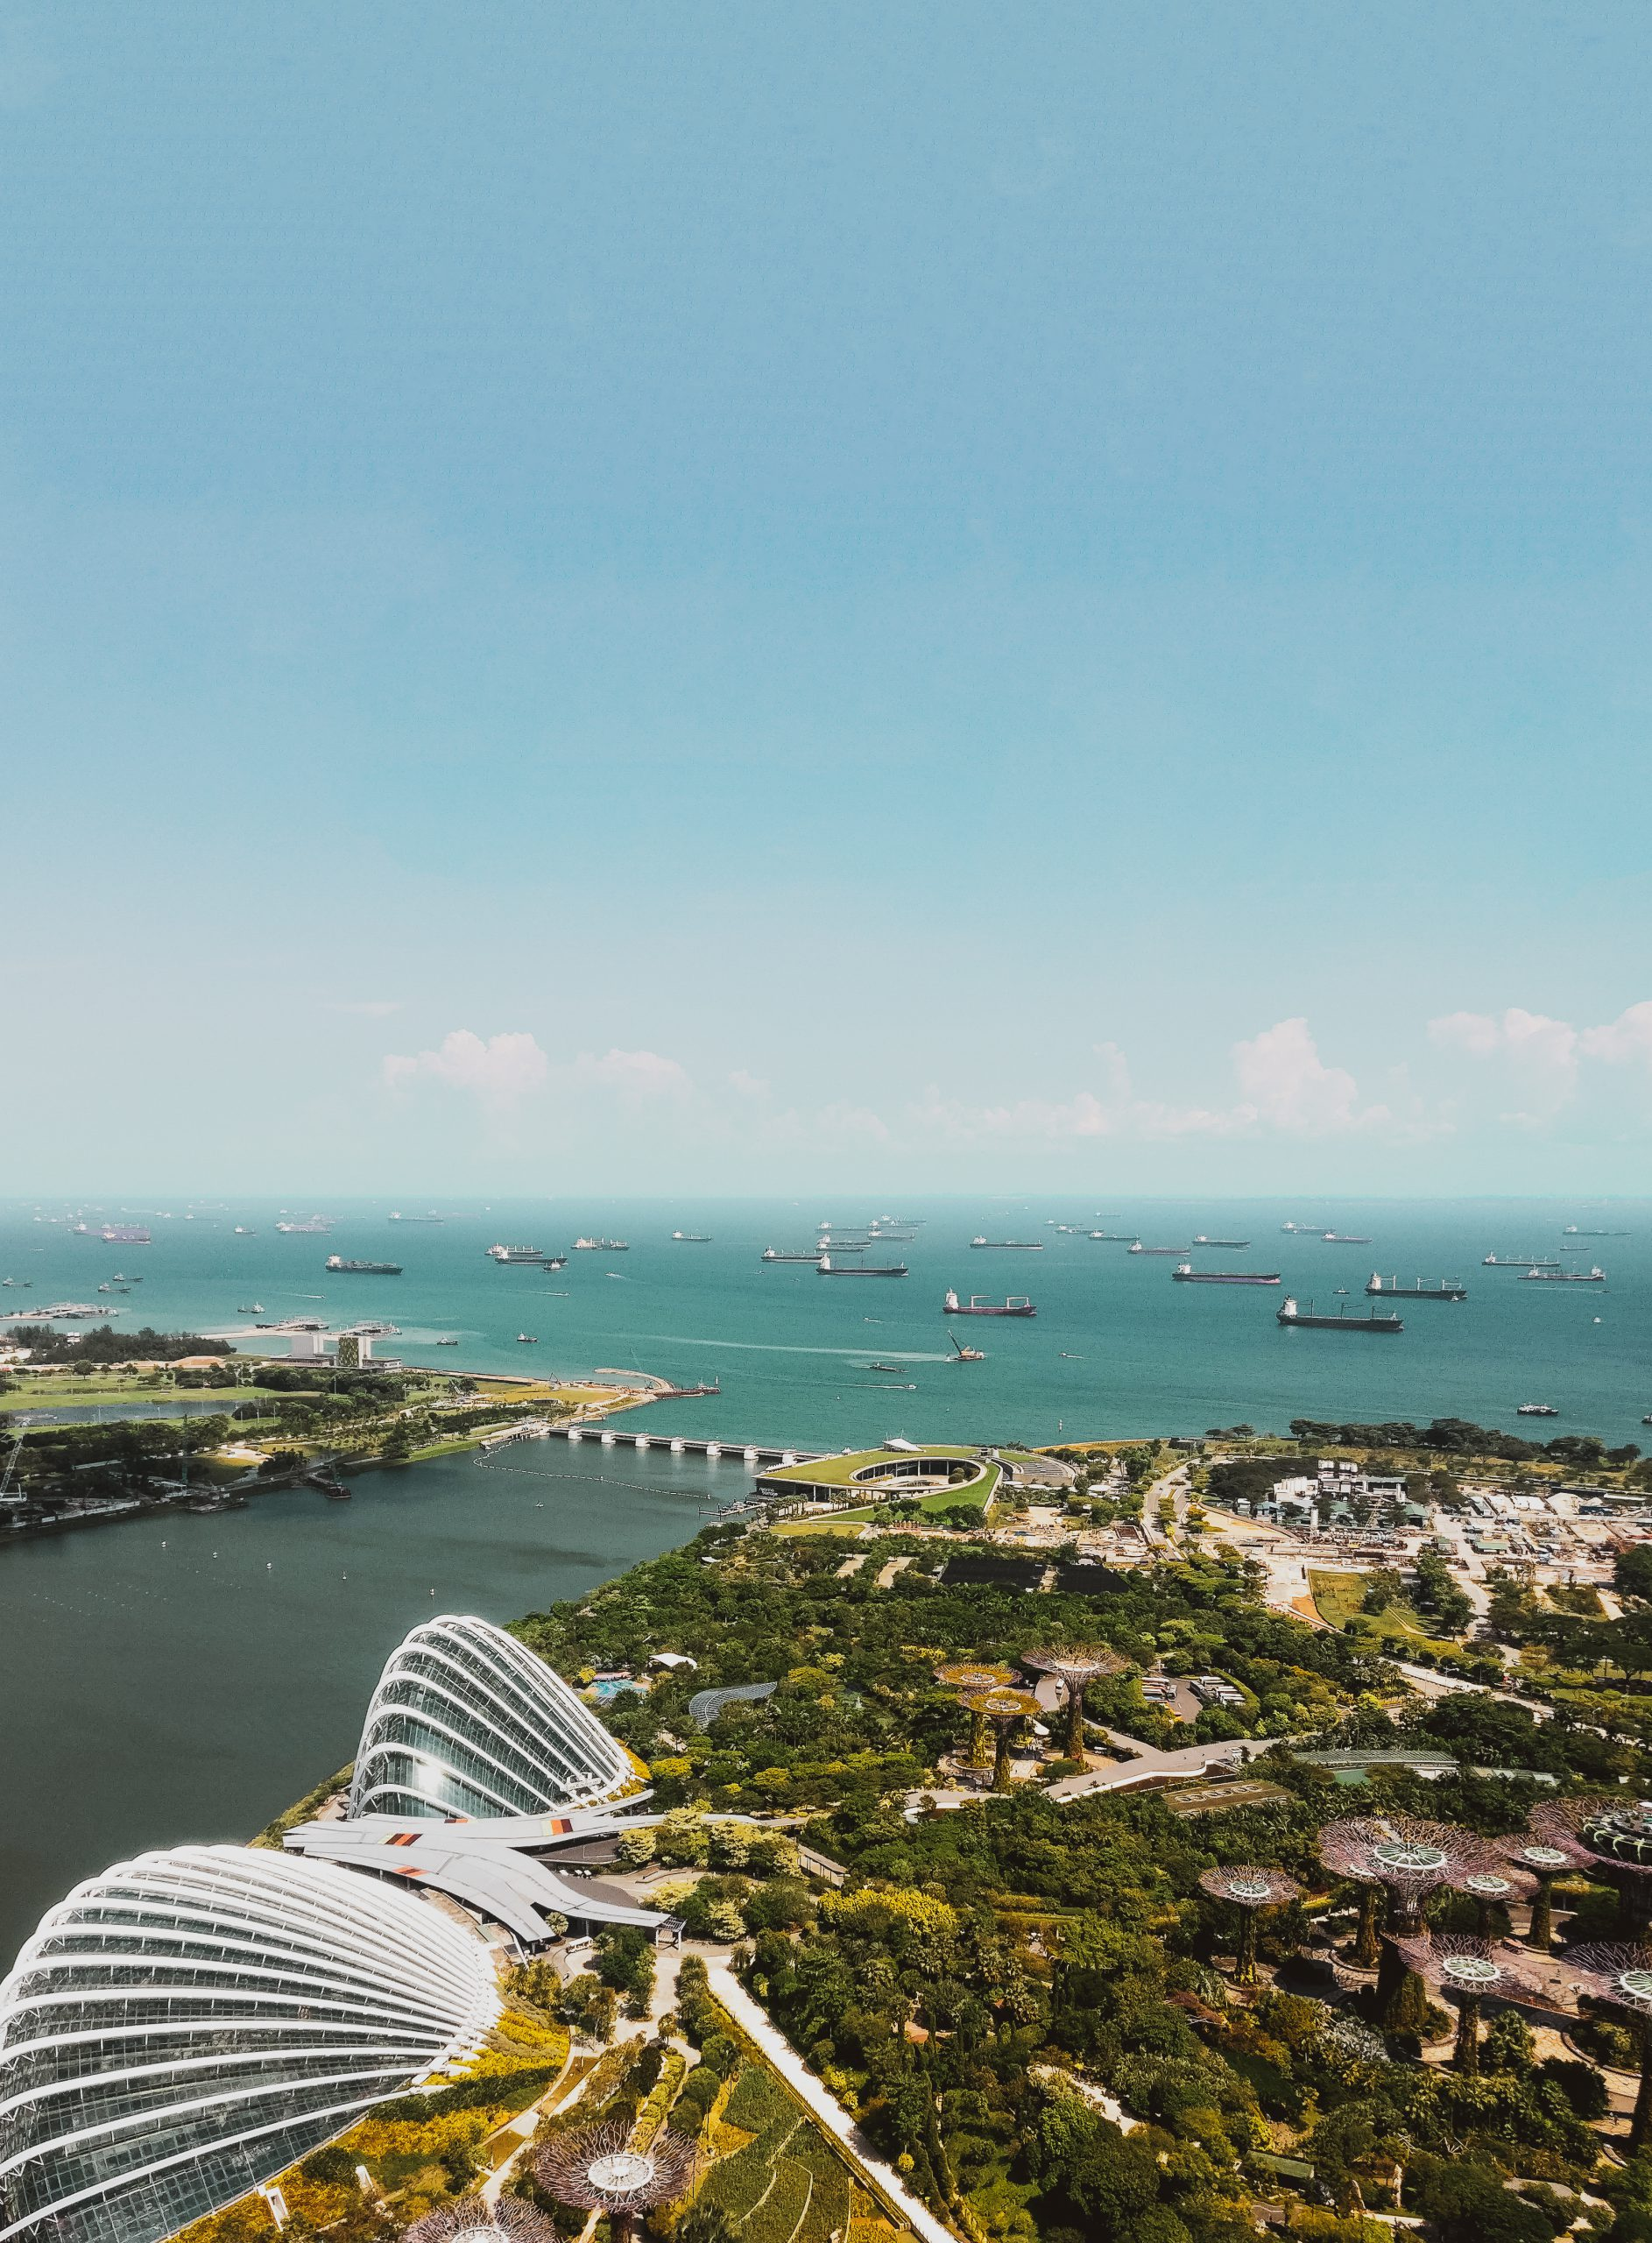 Aerial shot of buildings near marina bay sands